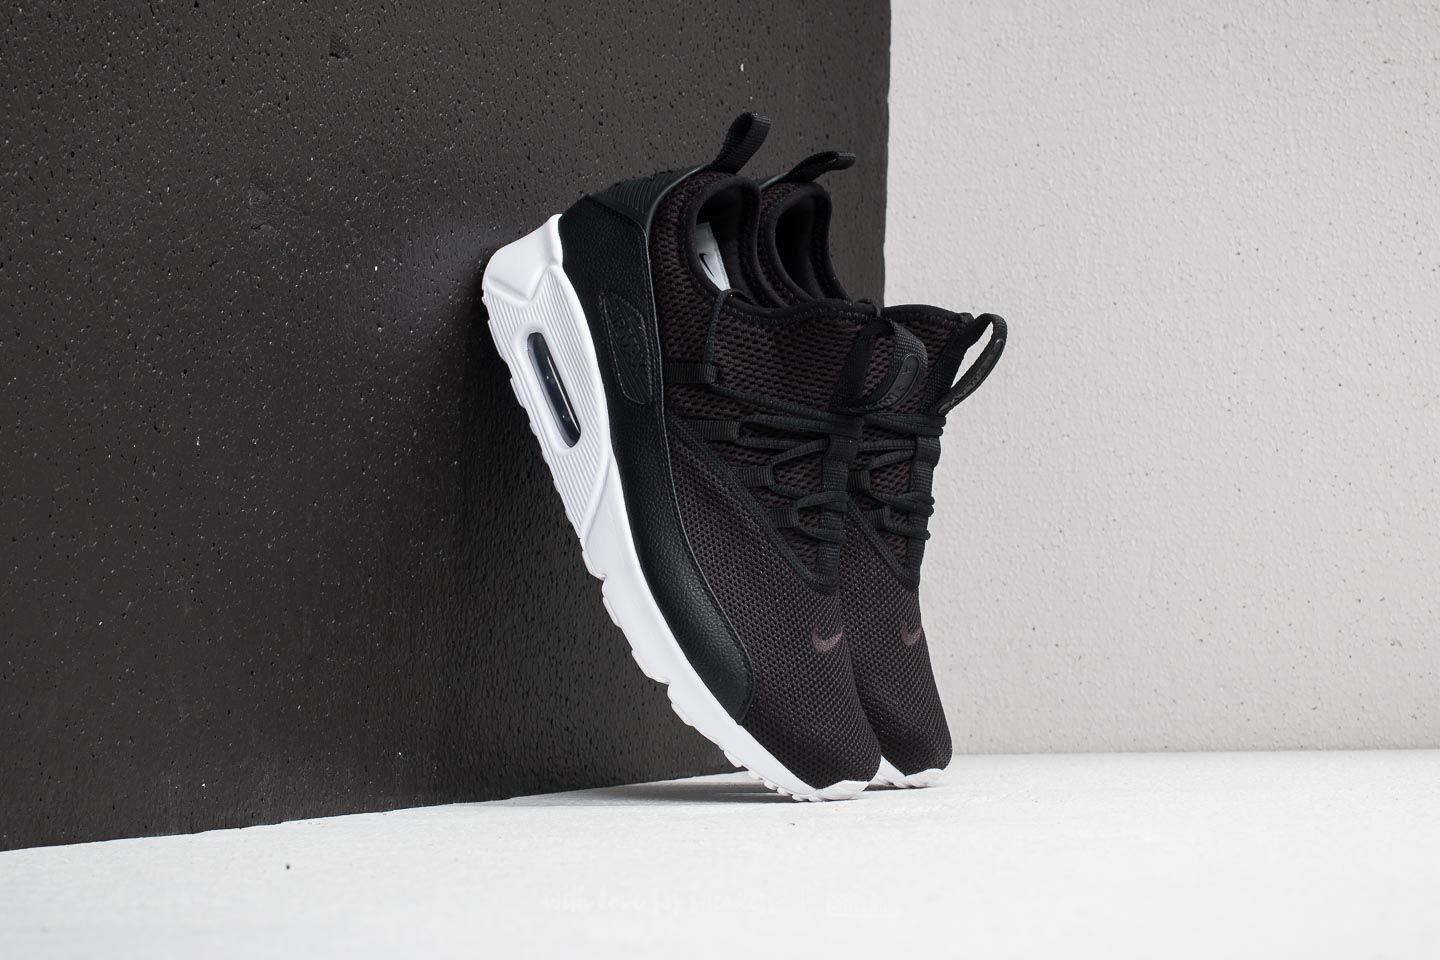 387fee56f7 Nike Air Max 90 EZ Black/ Black/ White | Footshop